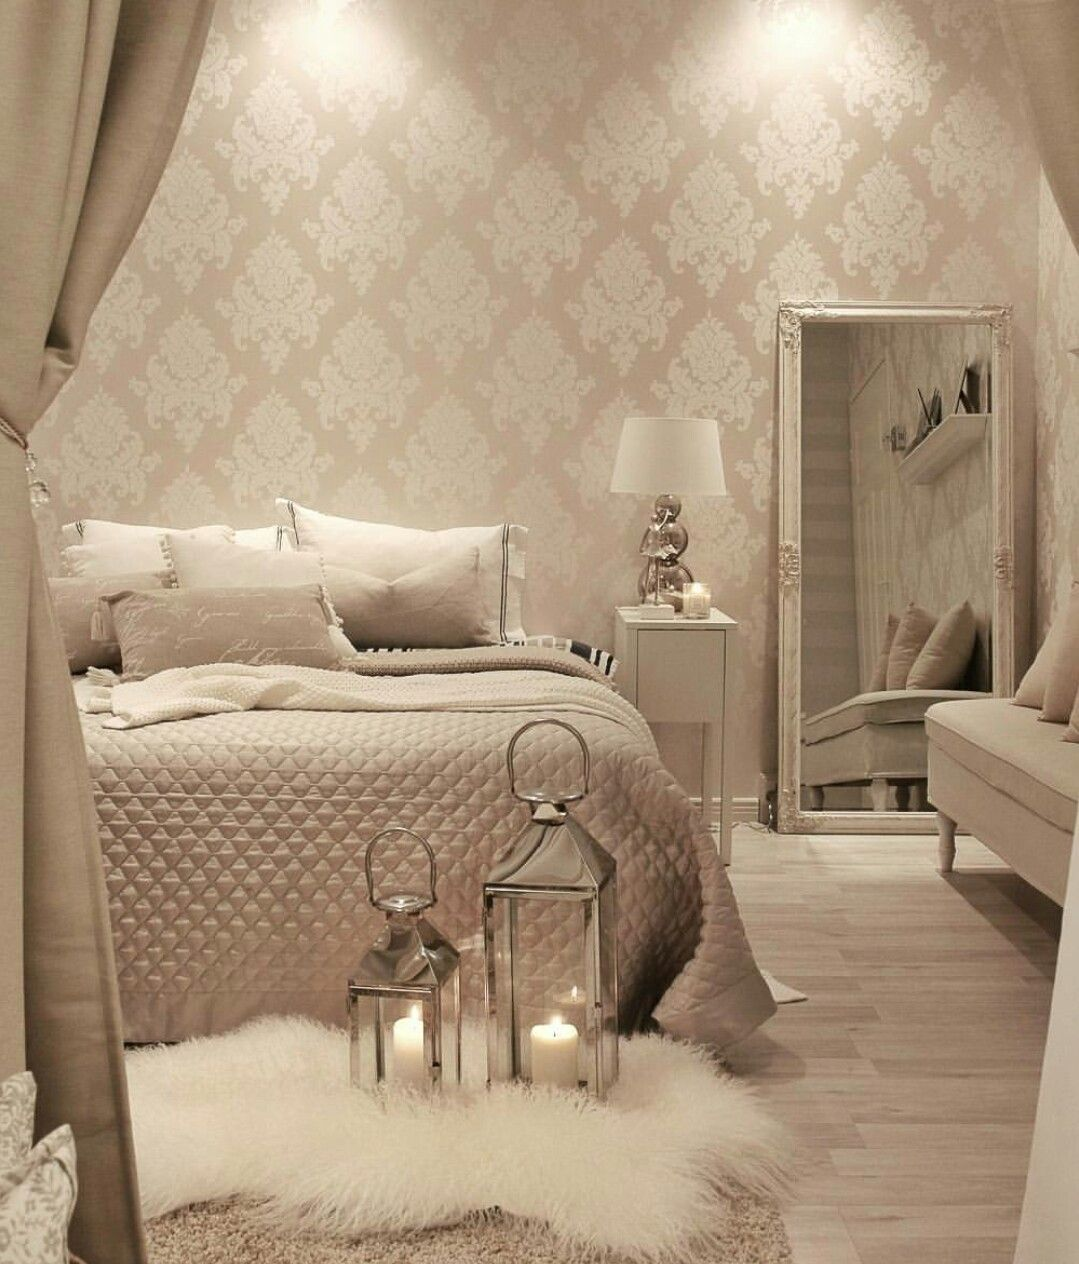 Pin By Gabby S On Home Decorating Ideas Master Bedrooms Decor Bedroom Decor Luxurious Bedrooms